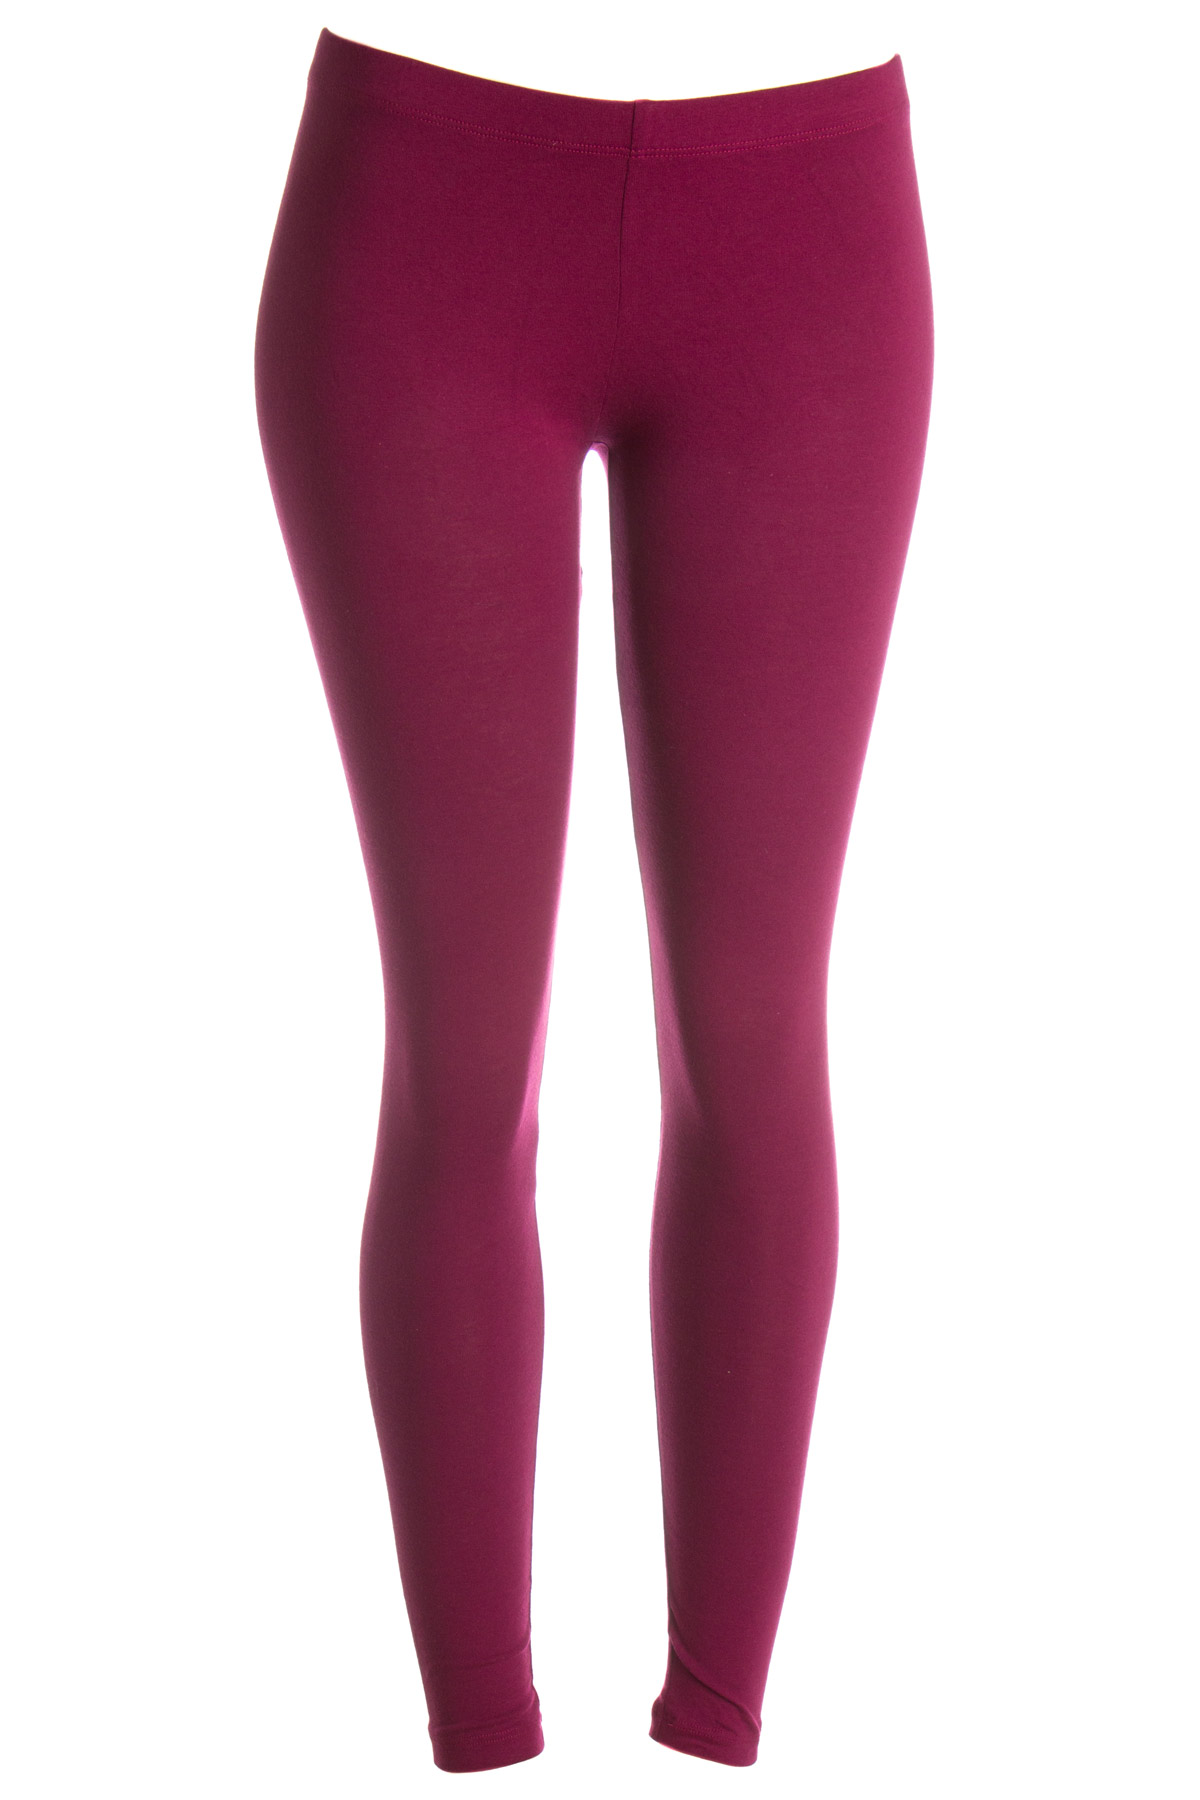 rose long legging